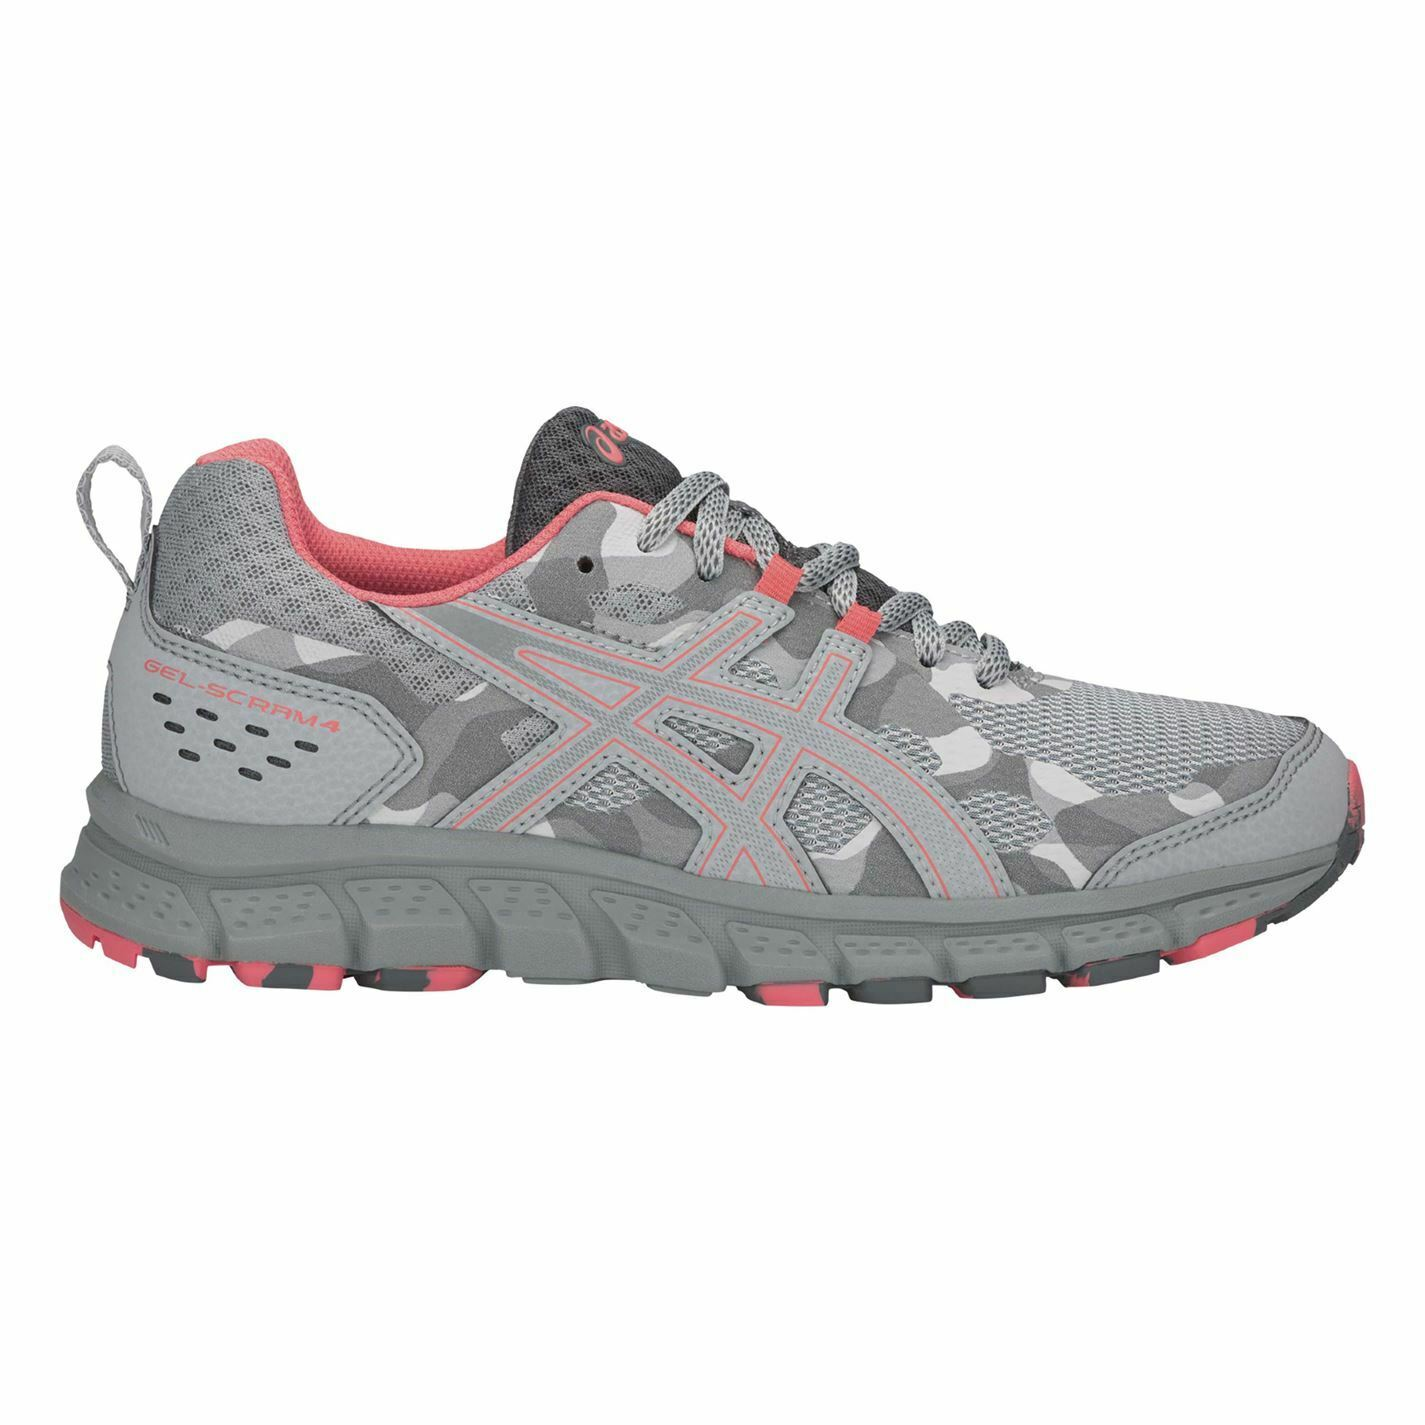 Asics Gel Scram 4 Trail Trail Trail Running shoes Ladies b9aa92